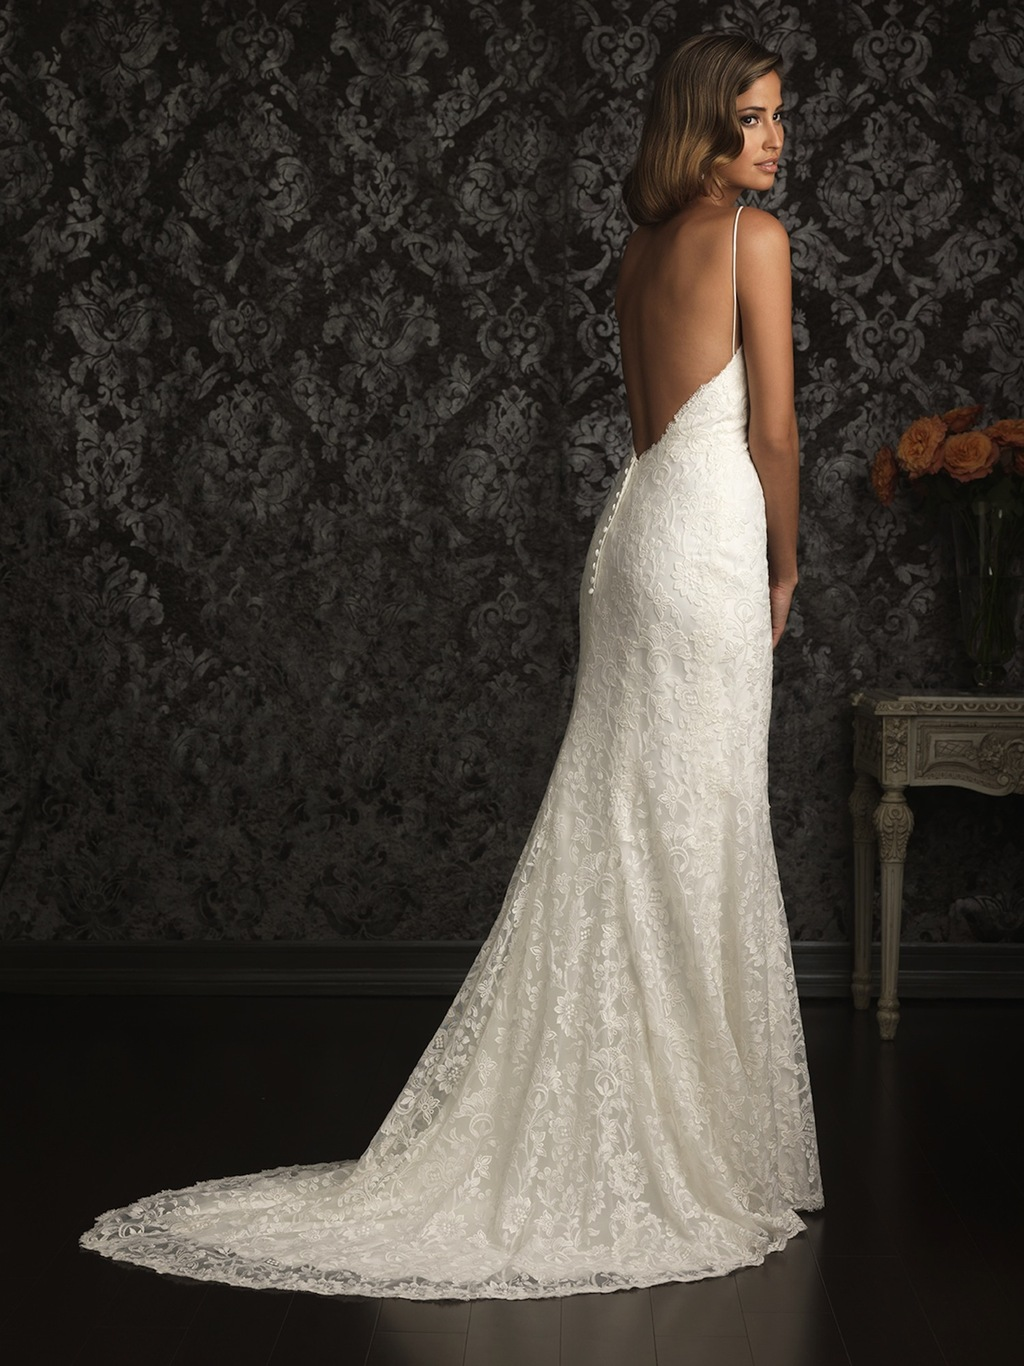 Allure-bridals-wedding-dress-bridal-gown-allure-collection-2013-9021b-2.full